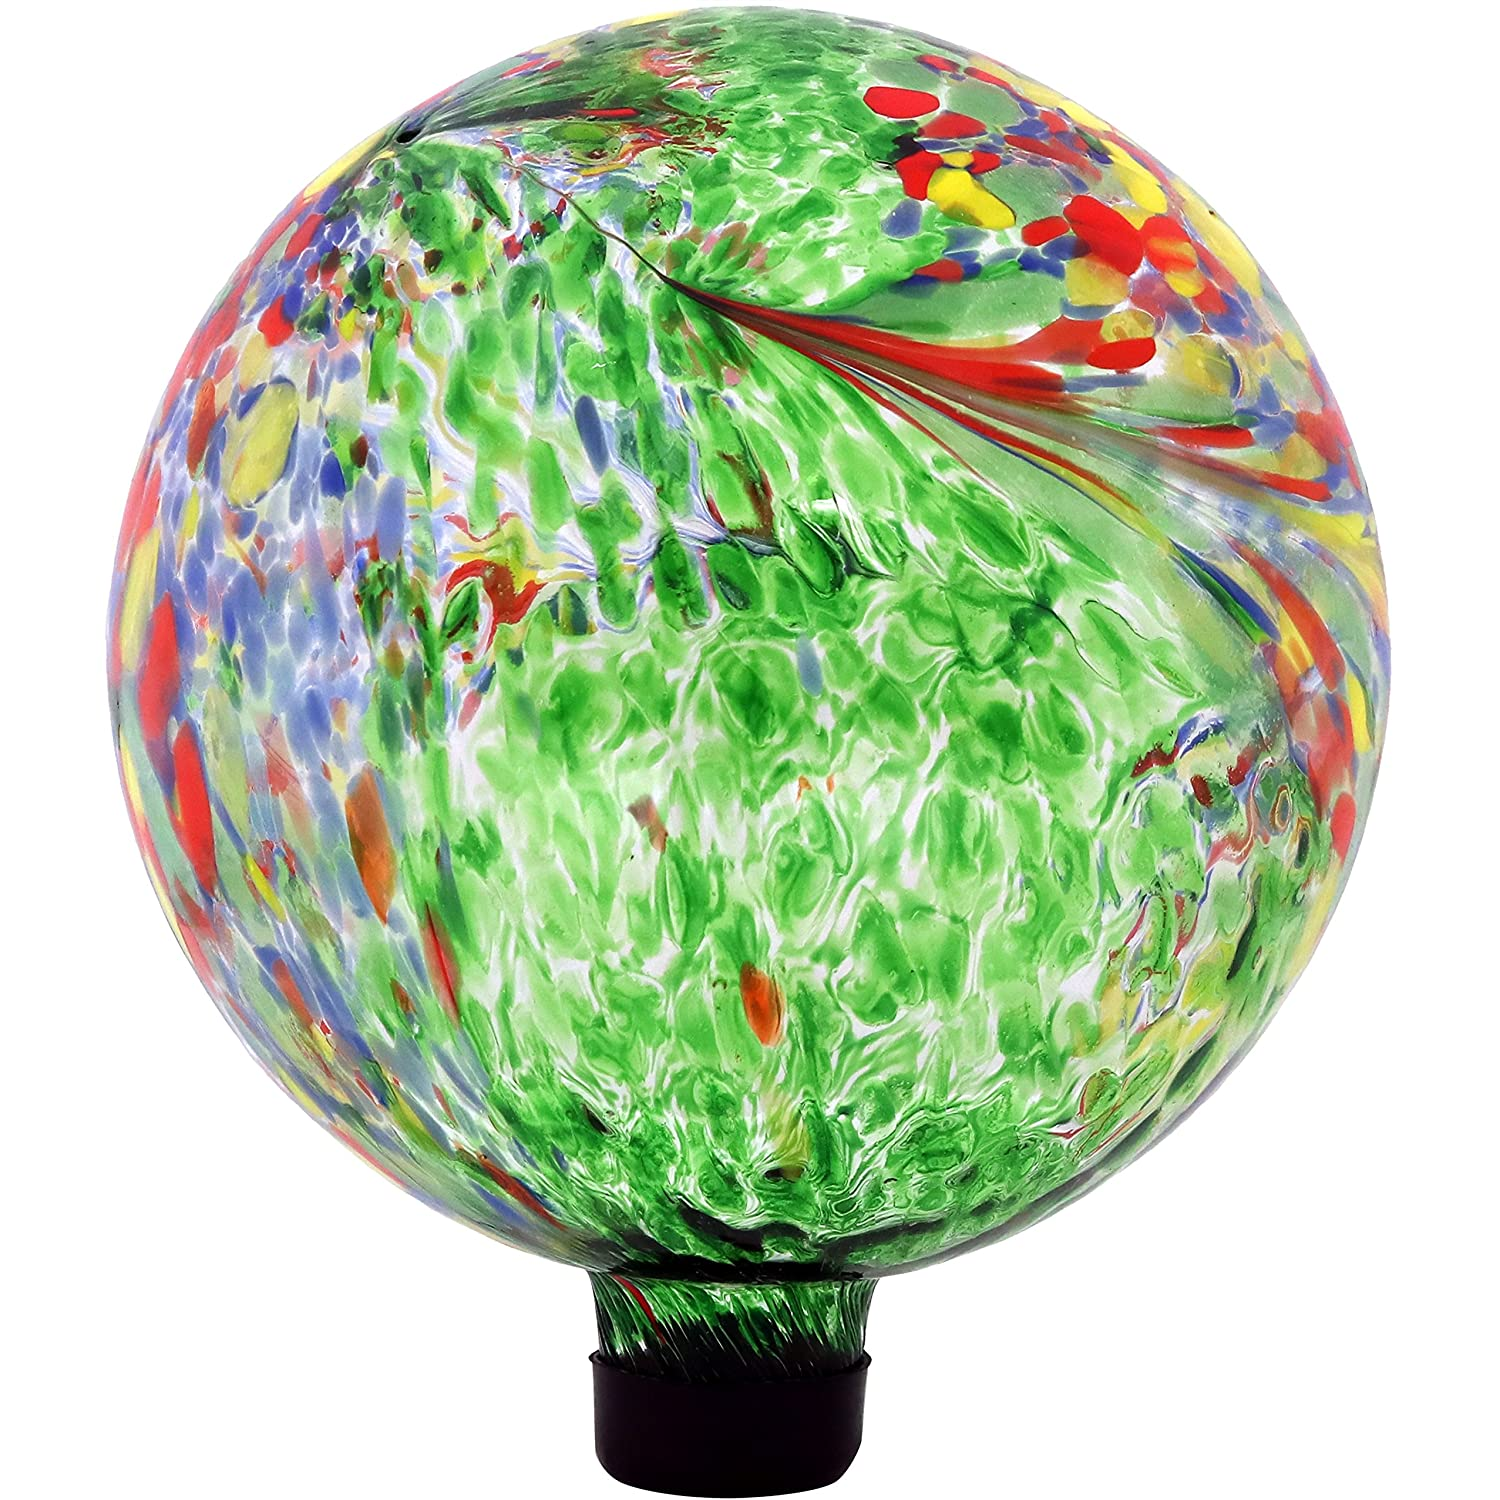 Sunnydaze Green Artistic Gazing Globe Glass Garden Ball, Outdoor Reflective Lawn and Yard Ornament, 10-Inch